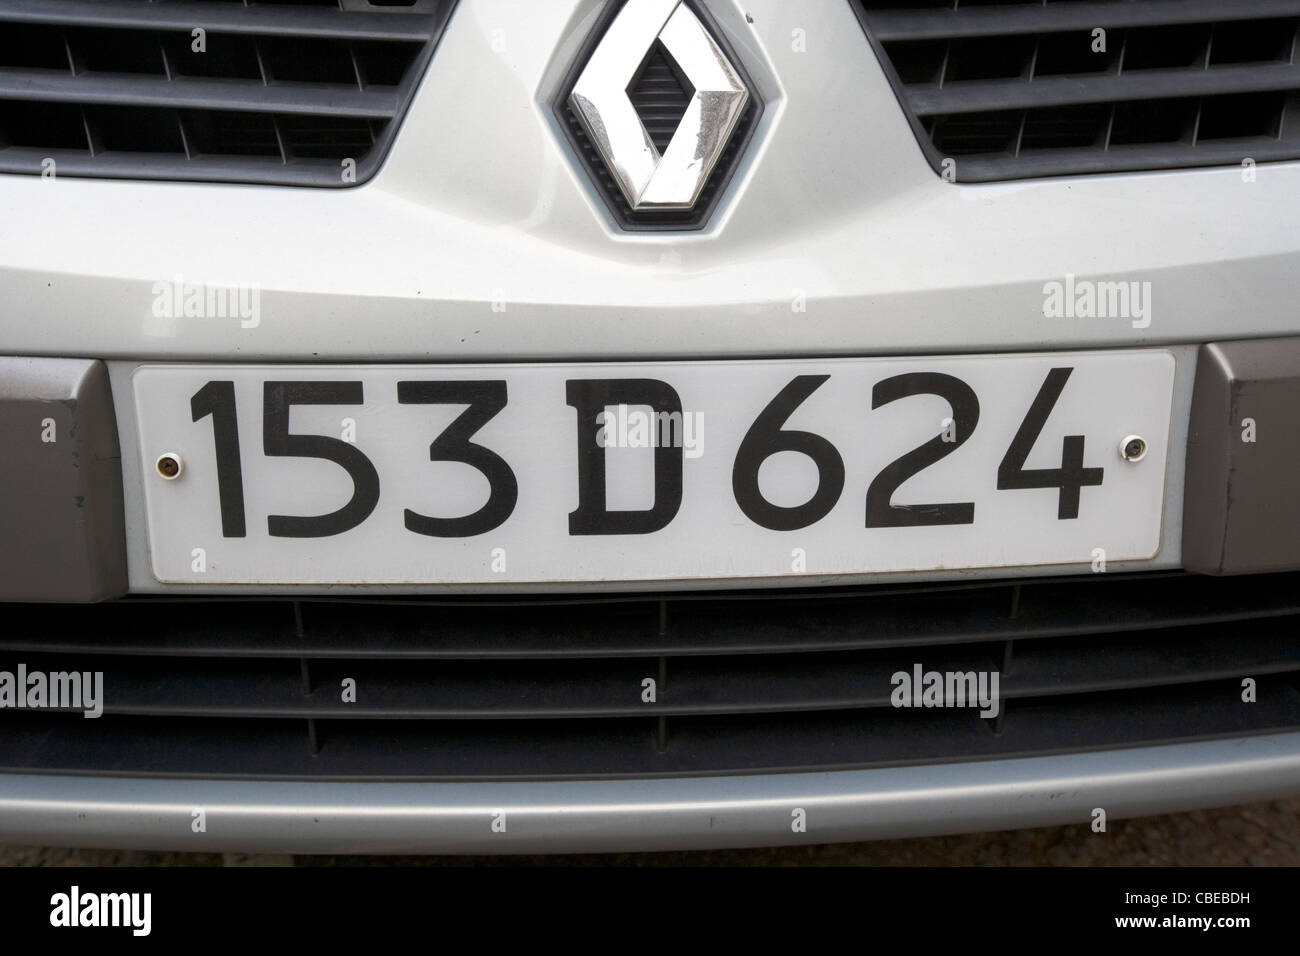 Diplomatic Plates On A French Embassy Car In London England Uk